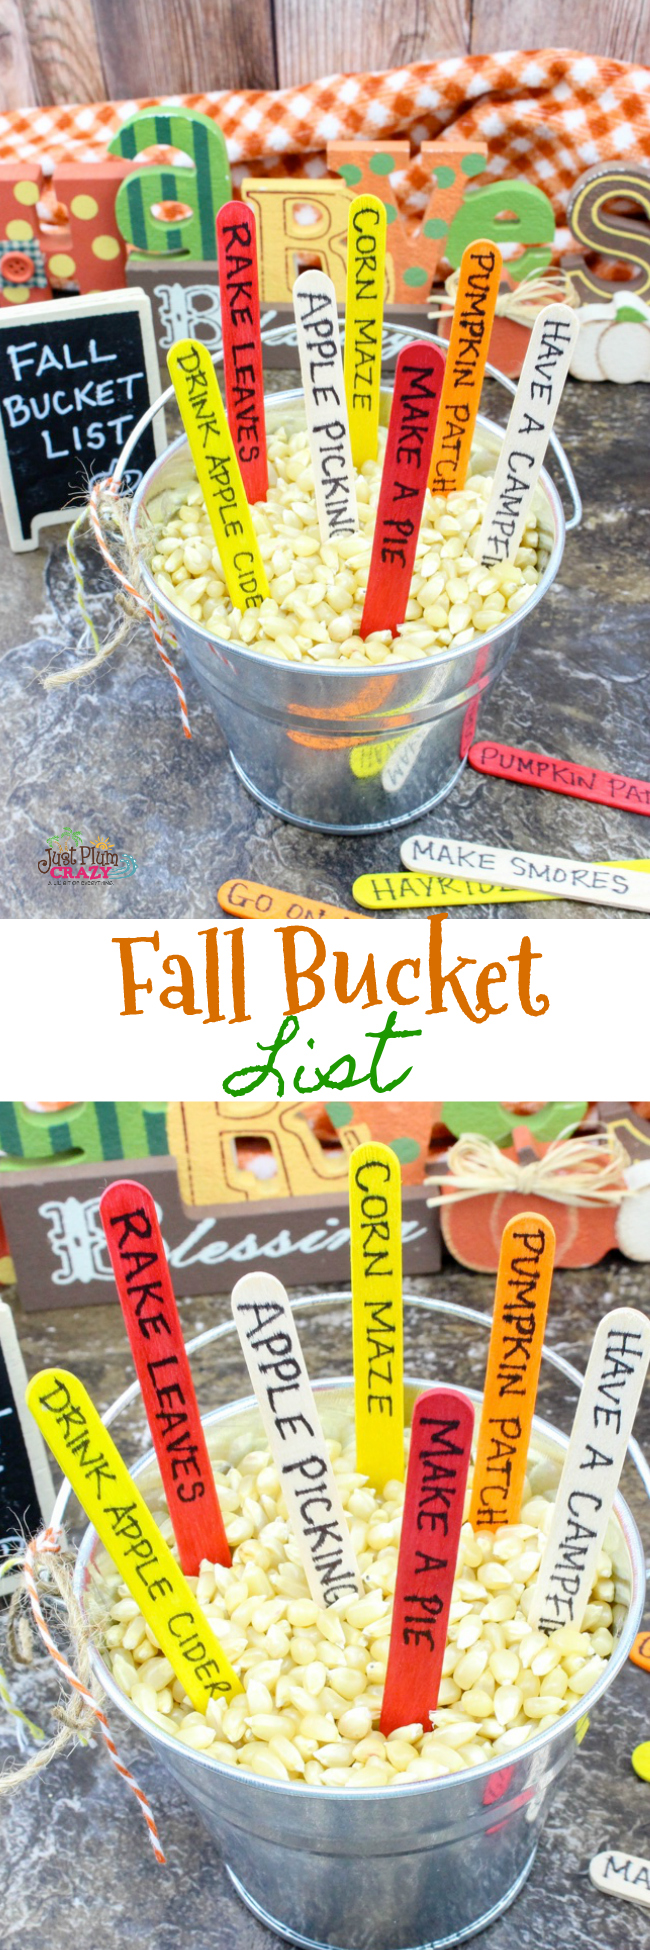 Fall bucket list craft to track activities.